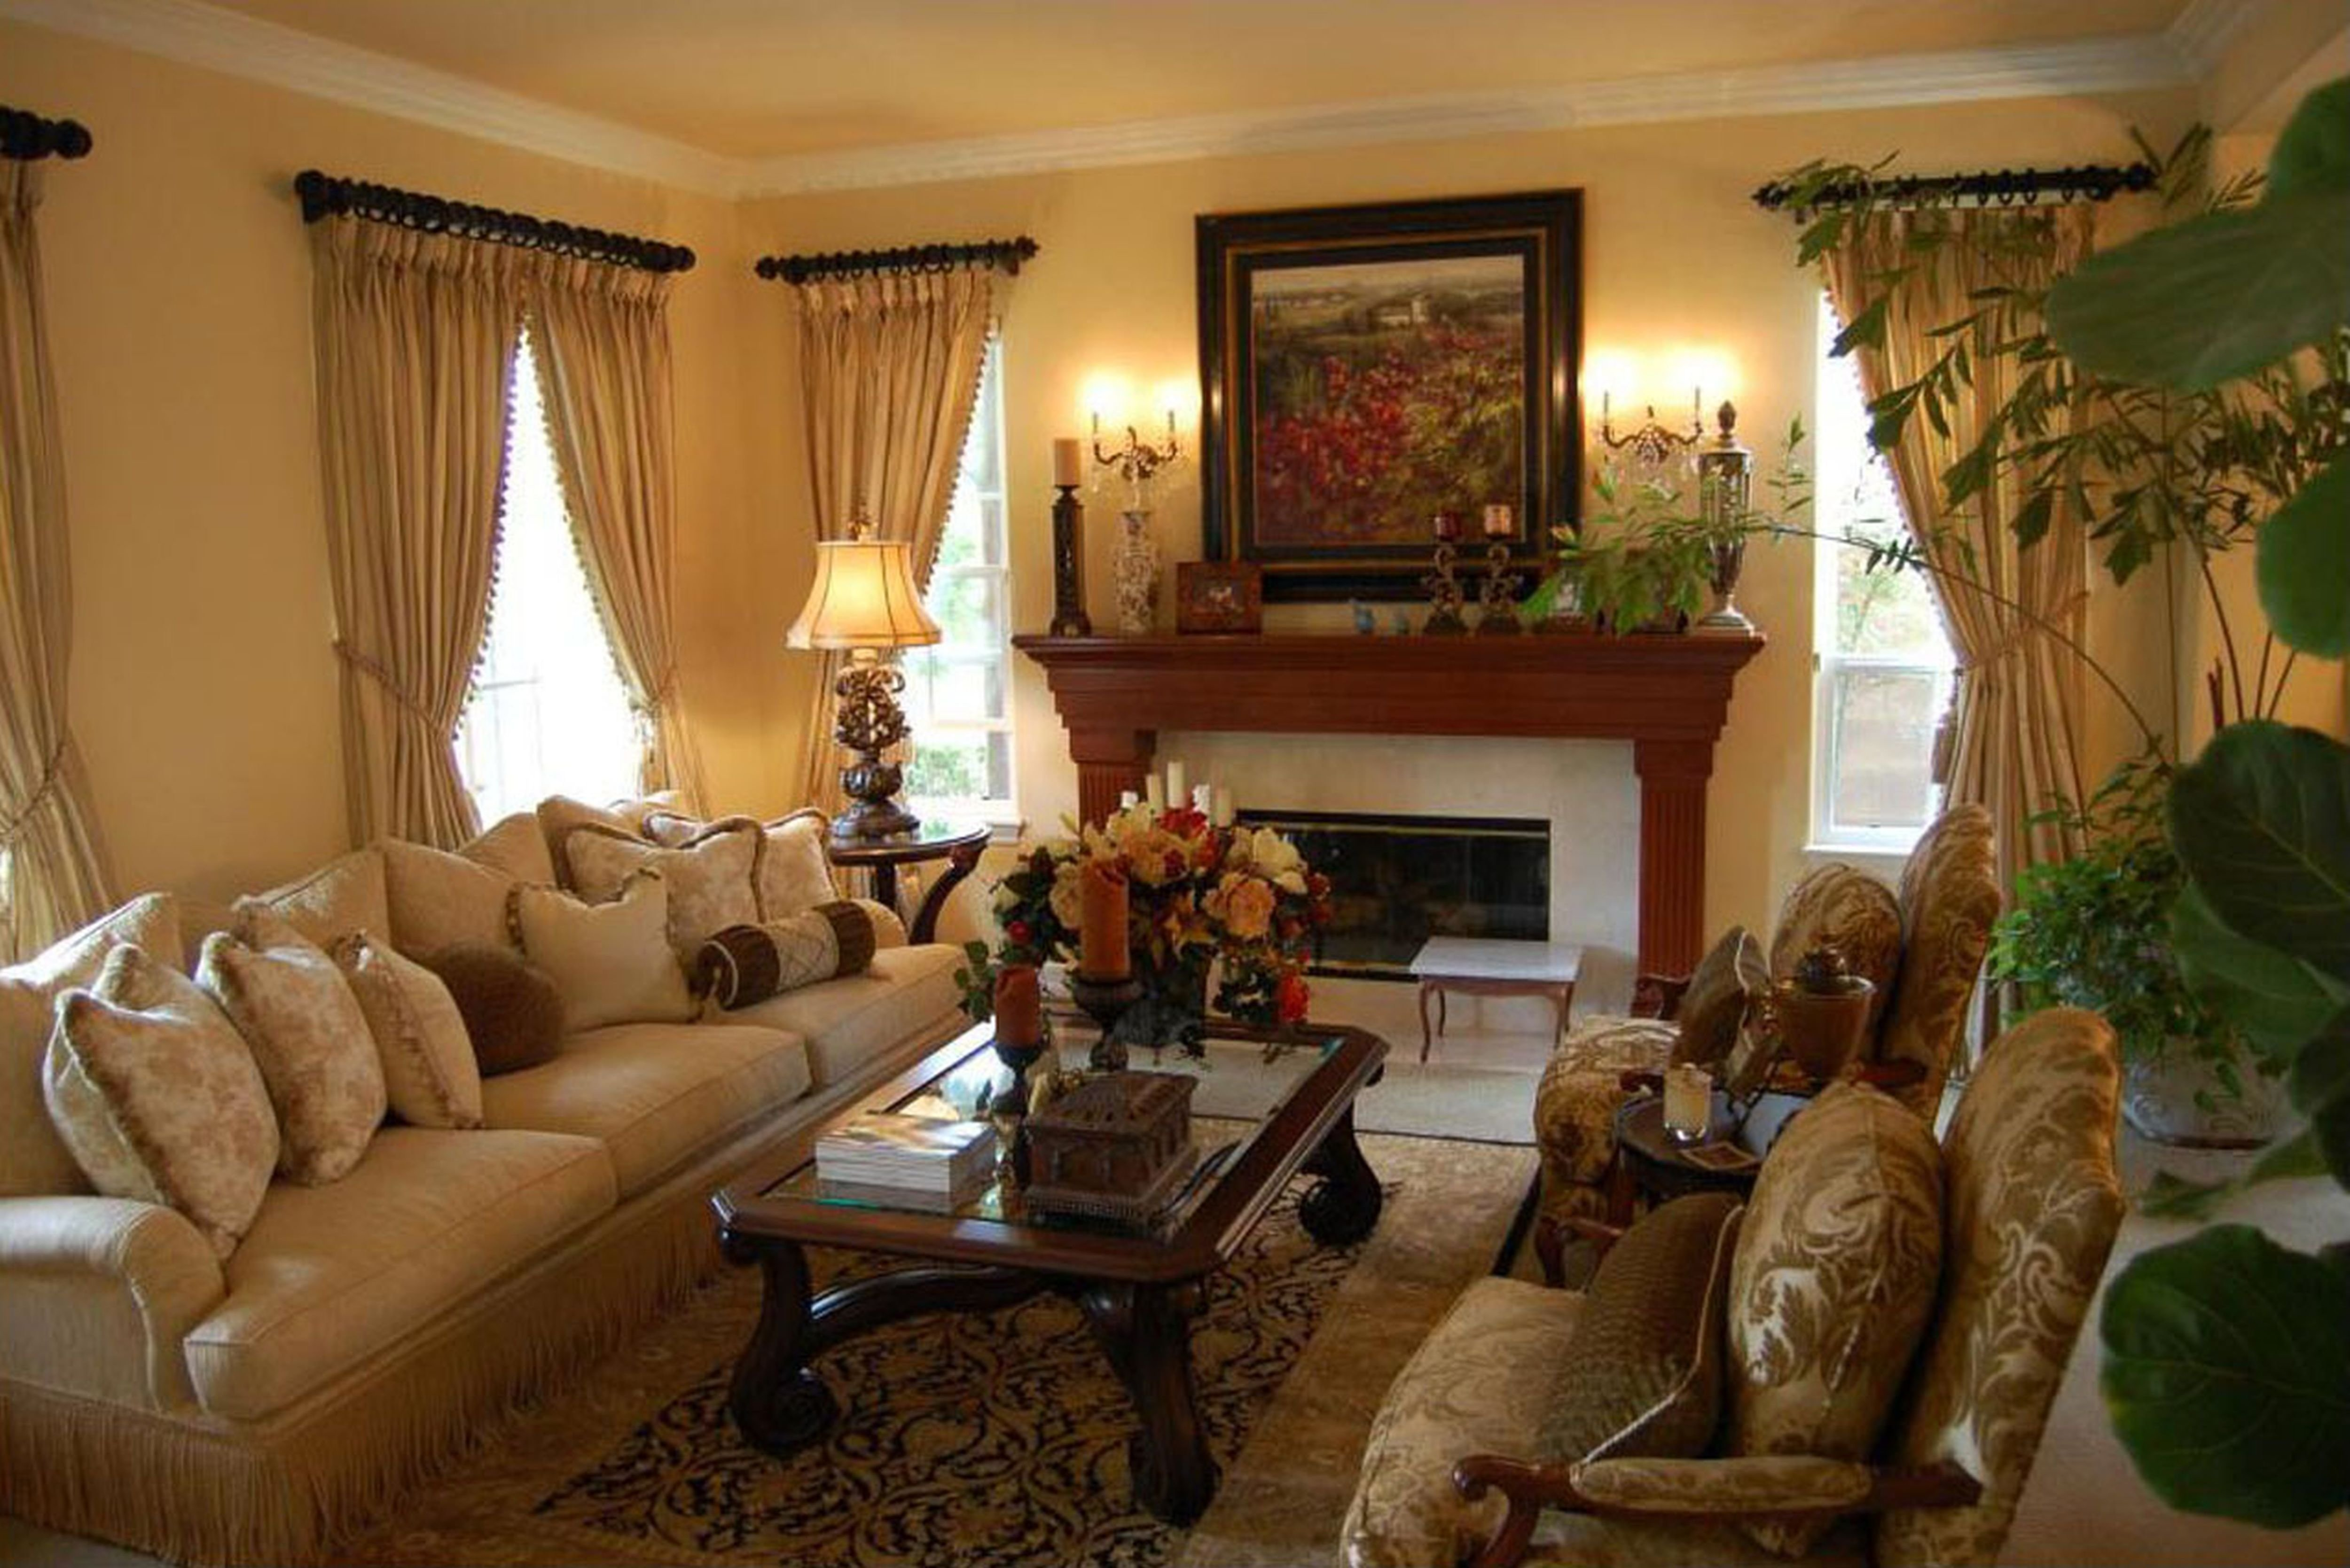 10 Fantastic Living Room Decorating Ideas Traditional living room traditional decorating ideas awesome outstanding 1 2021